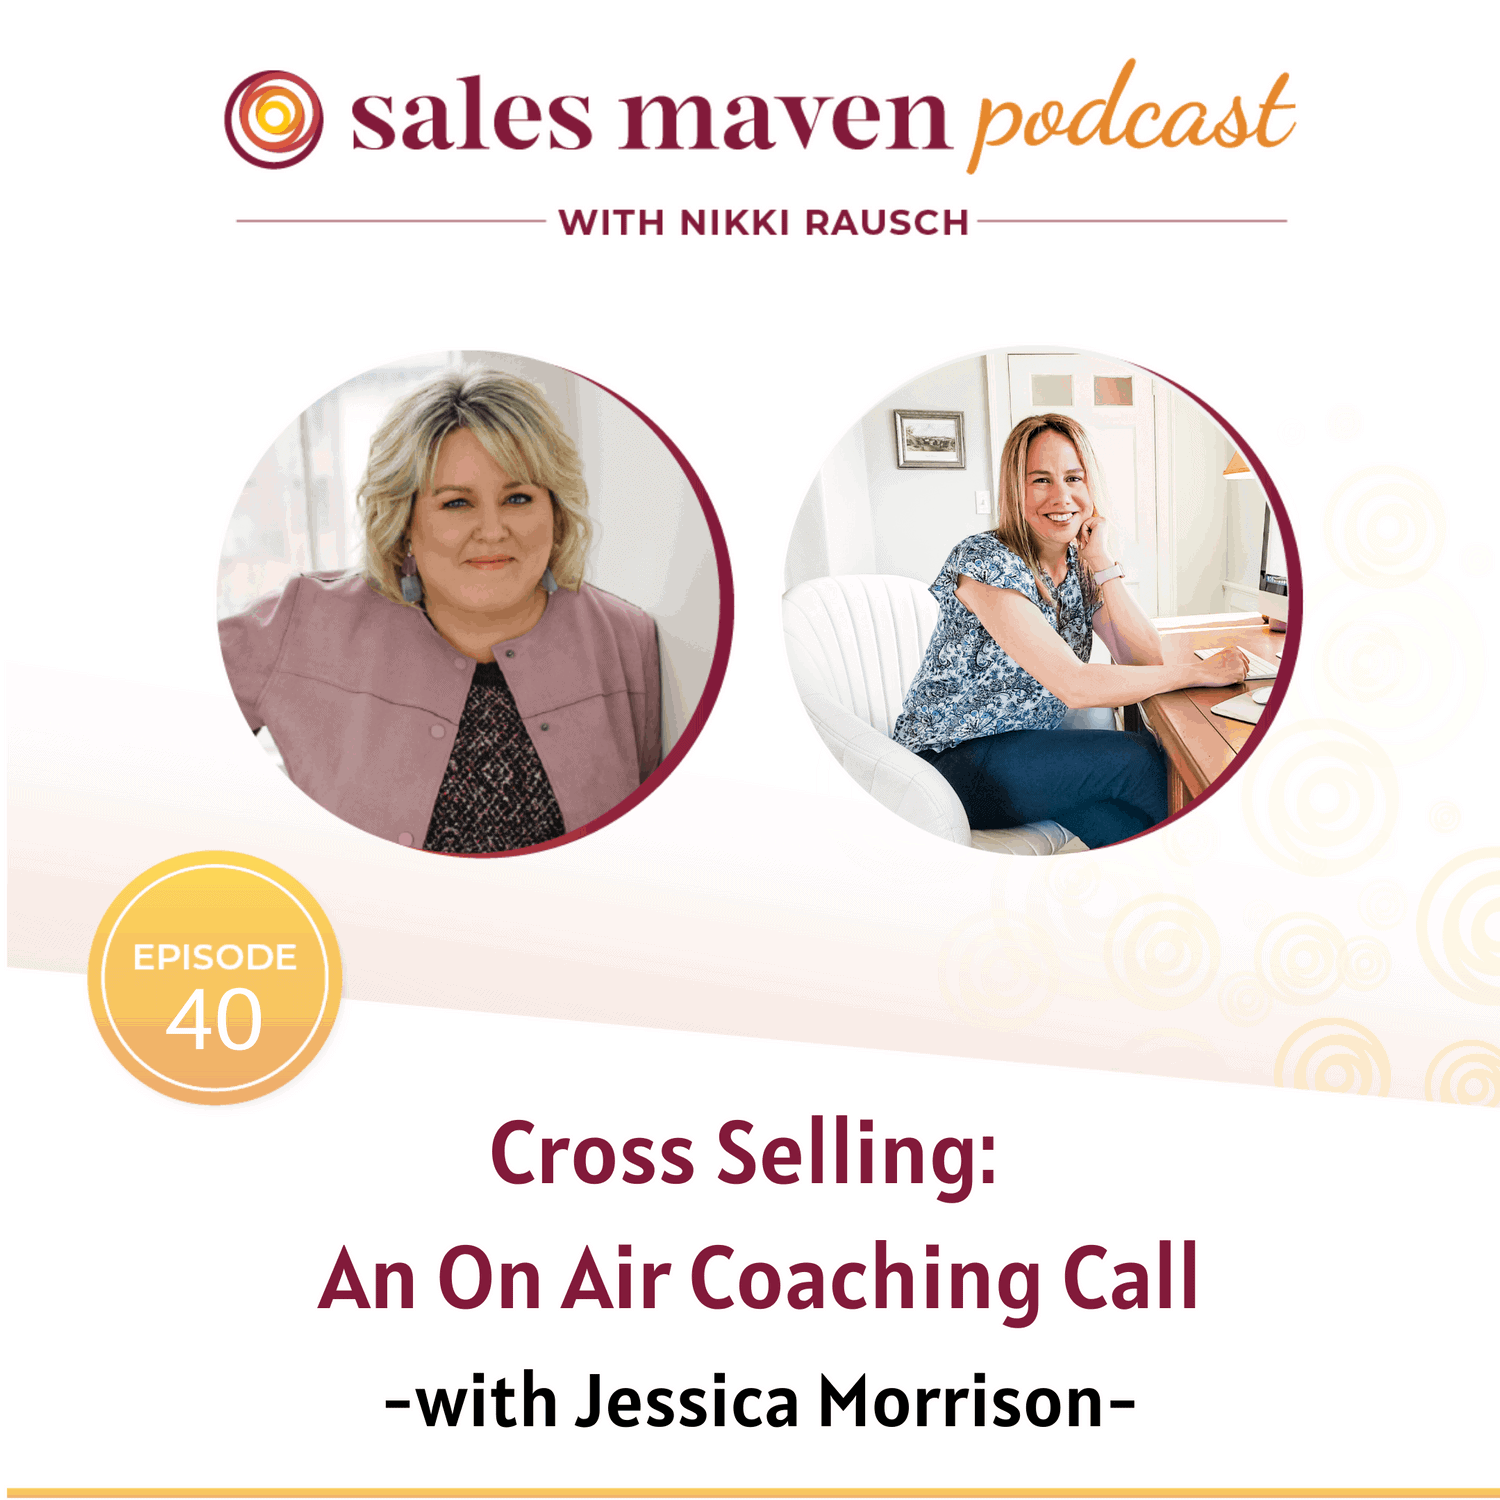 Cross Selling with Jessica Morrison